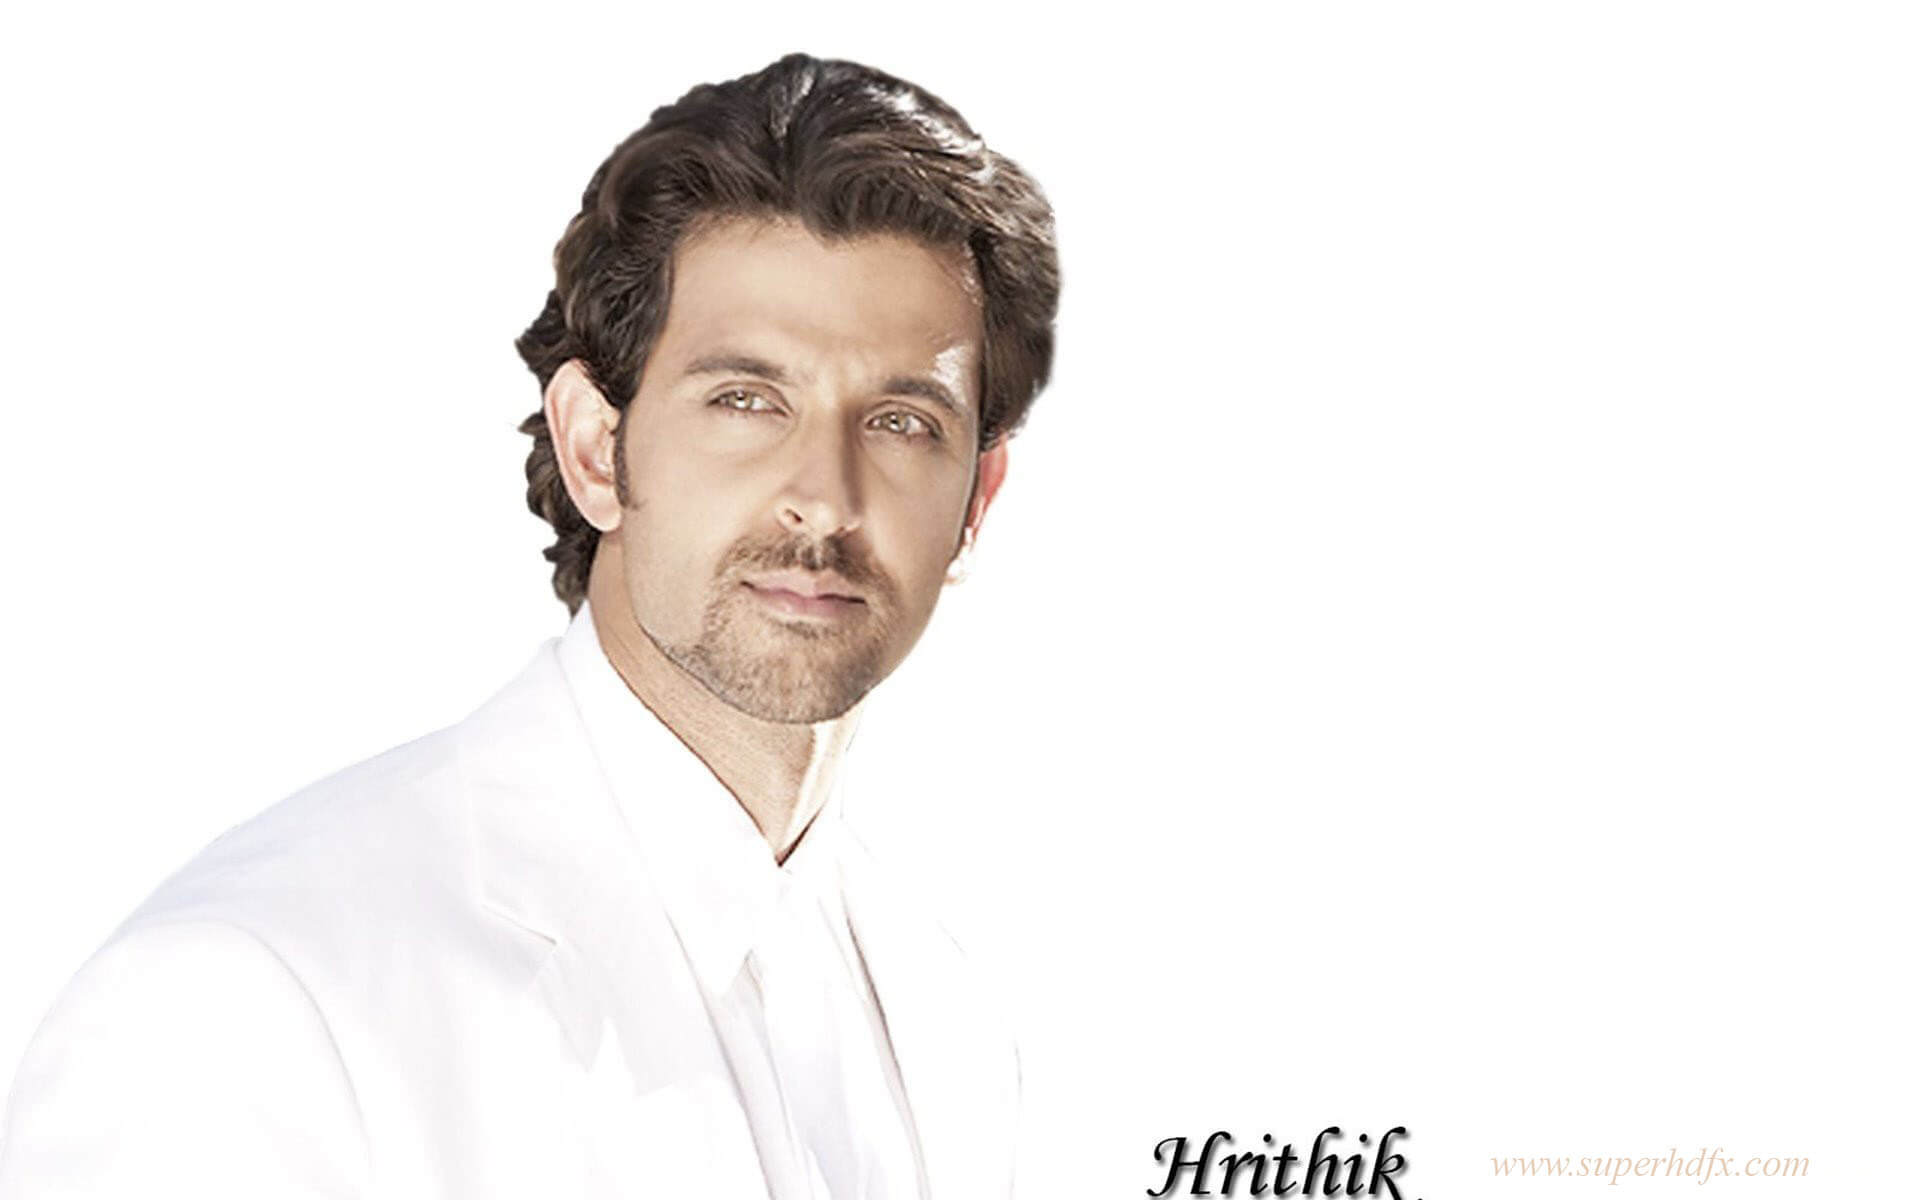 Hrithik Roshan Age, Movie, Height, Wife, Photos(images), Height, News, Dance, Son, Birthday, Family, Biography, Kids, Awards, Education,religion, Instagram, Twitter, Facebook, Wiki, Youtube, ( (128)